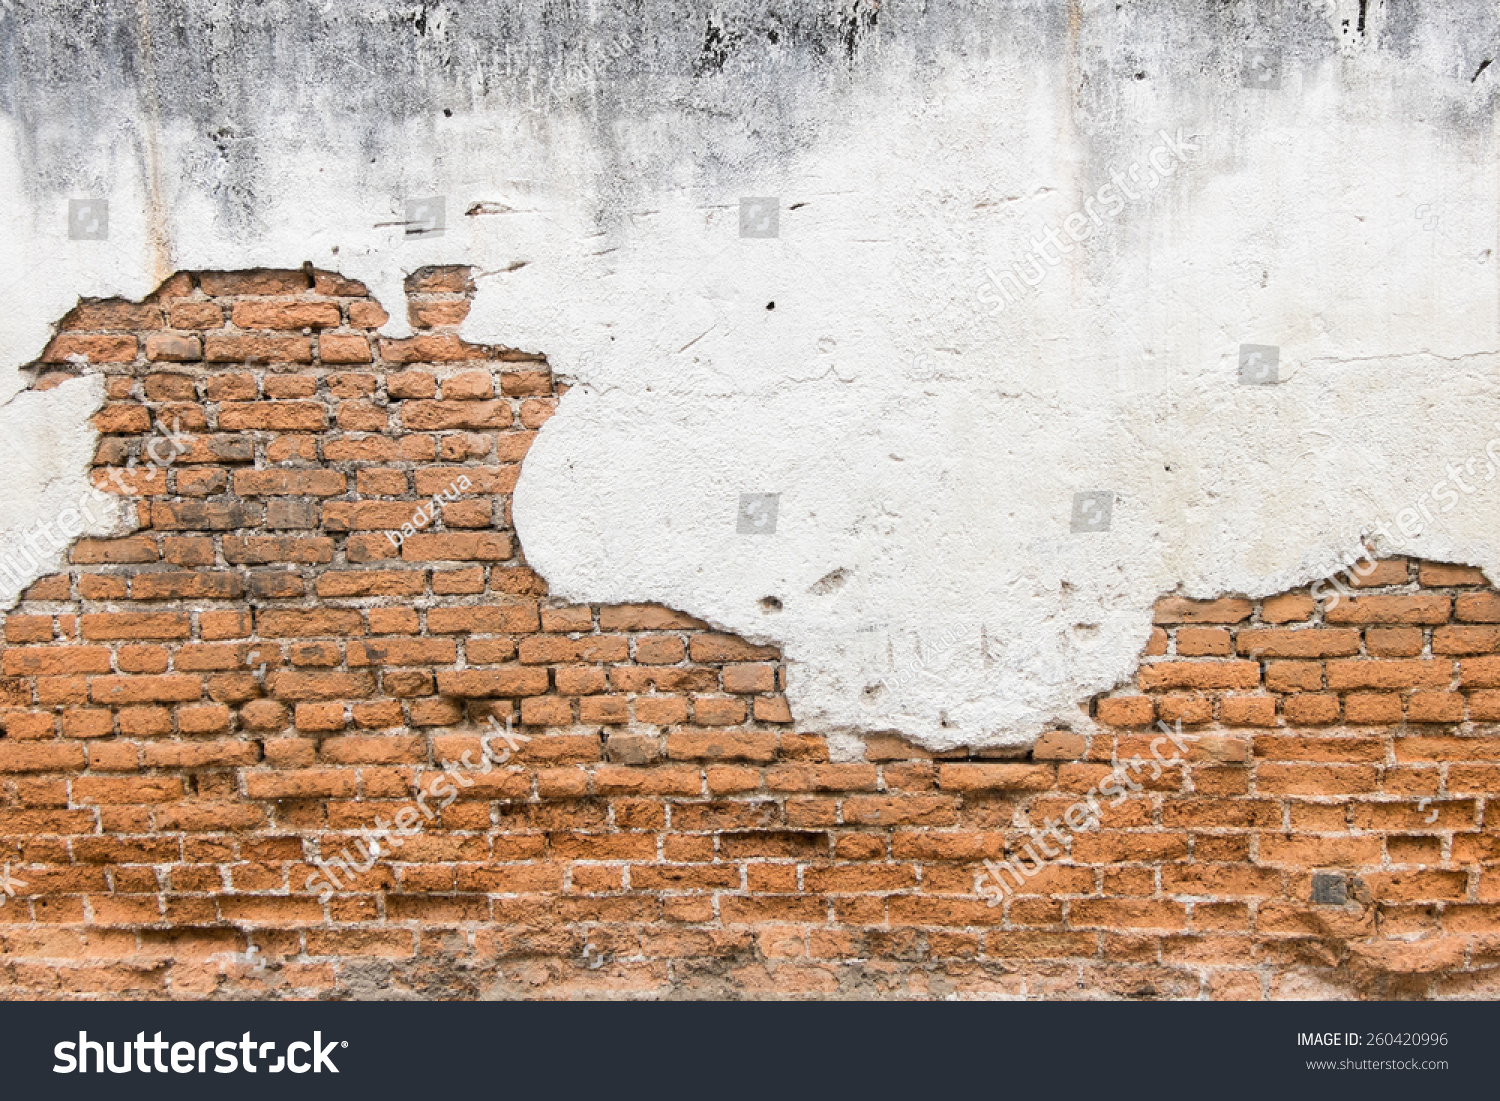 White Exposed Brick Wall White Exposed Brick Concrete Wall Stock Photo 260420996 Shutterstock